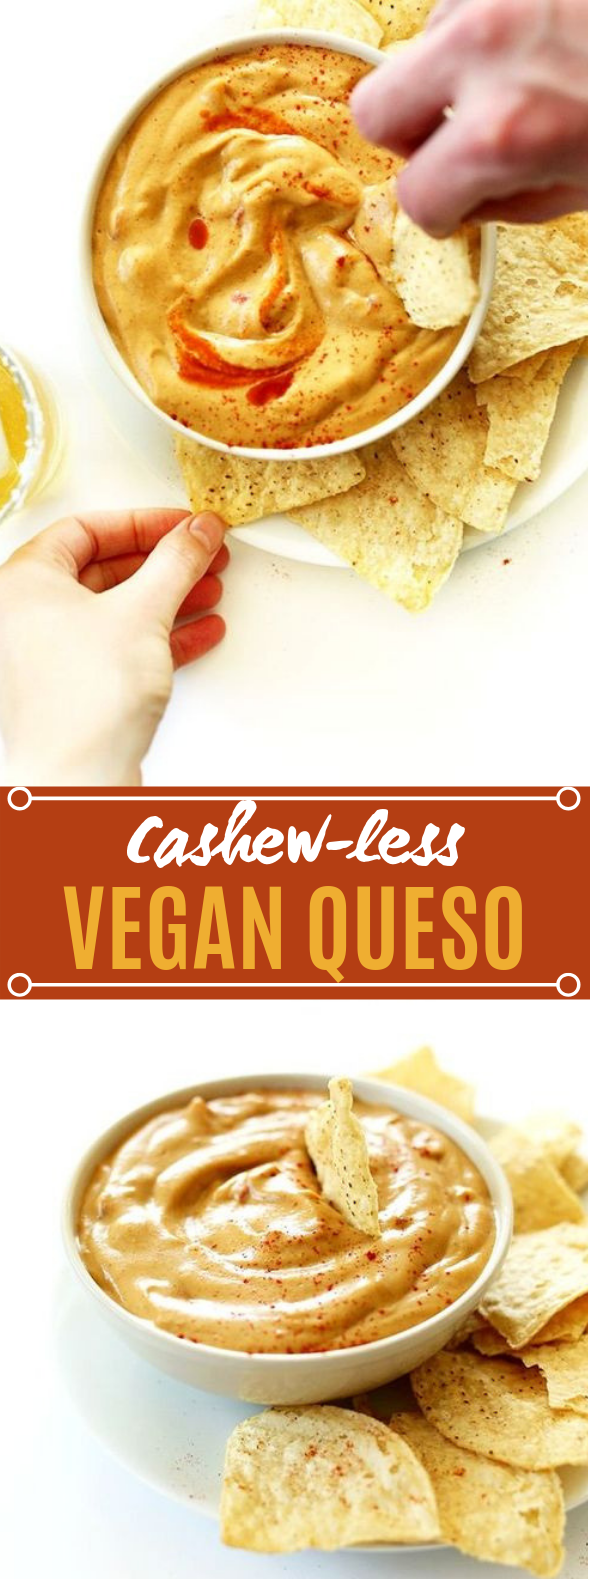 Cashew-less Vegan Queso #sauce #vegetarian